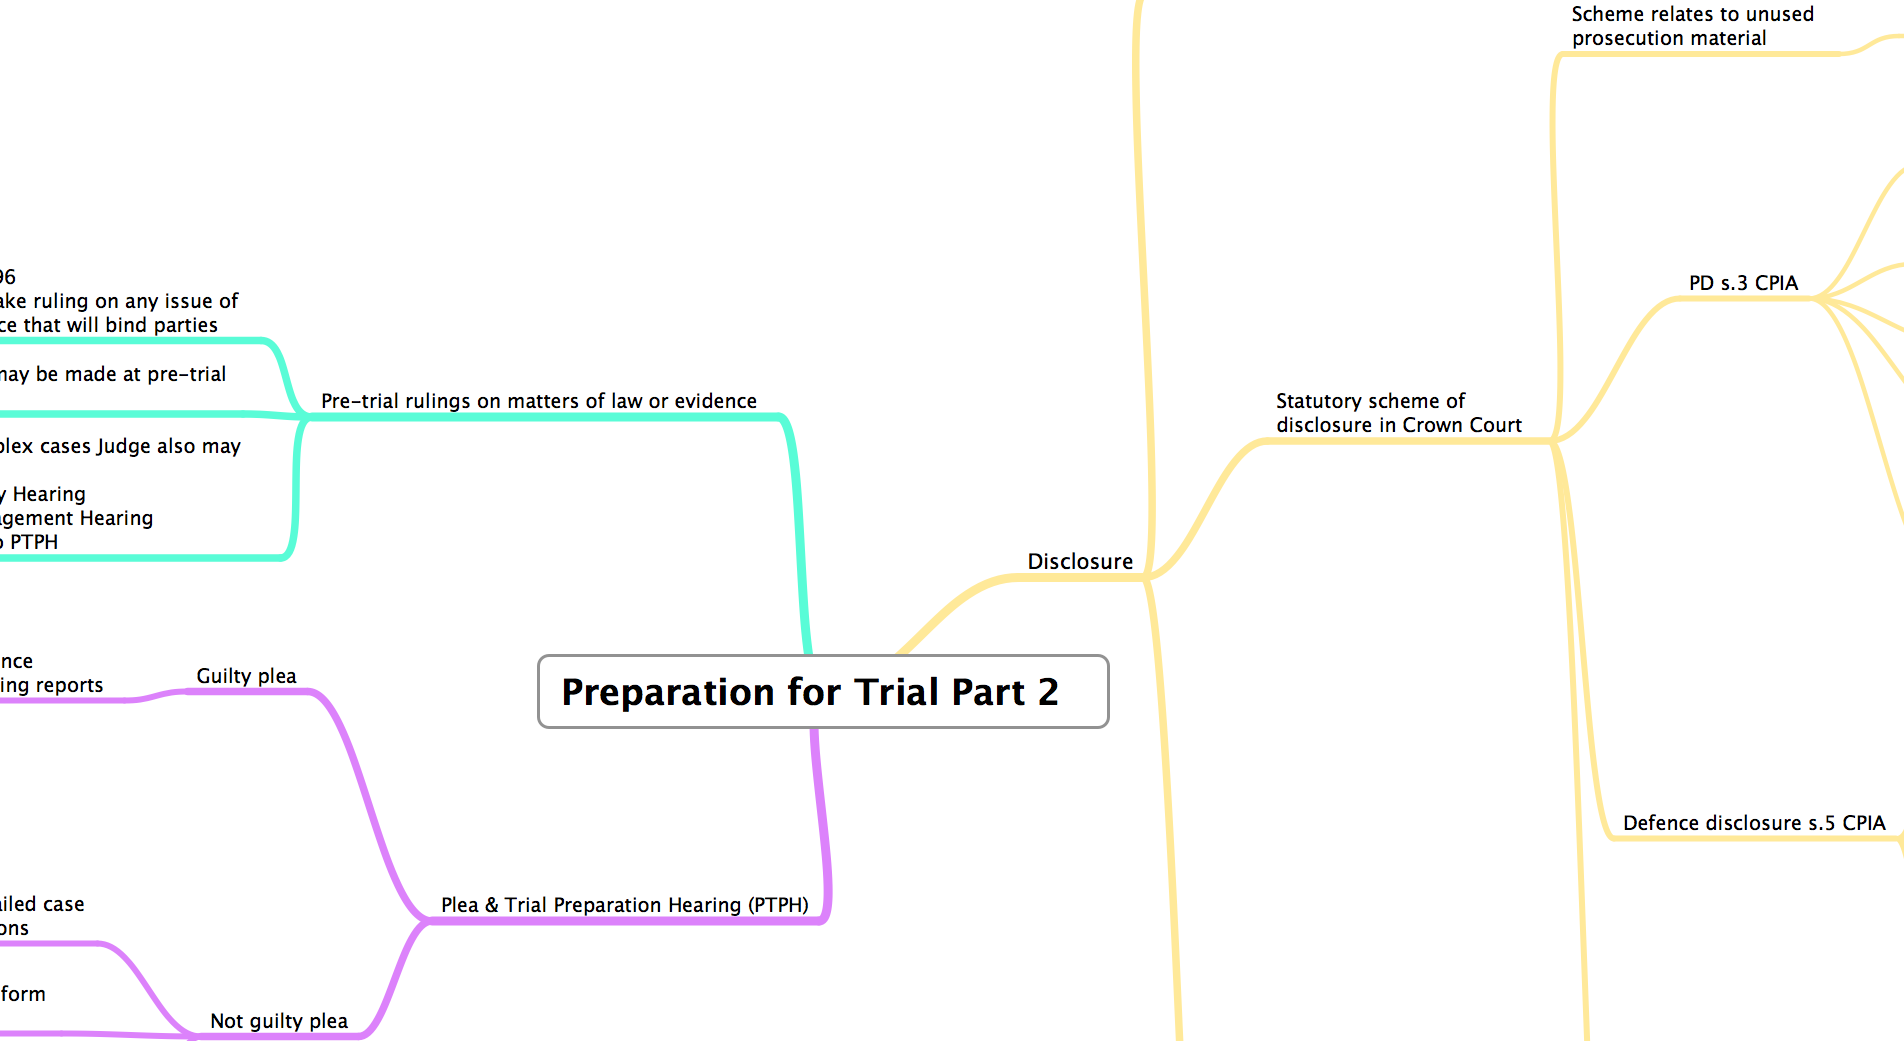 PREPARATION FOR TRIAL 2